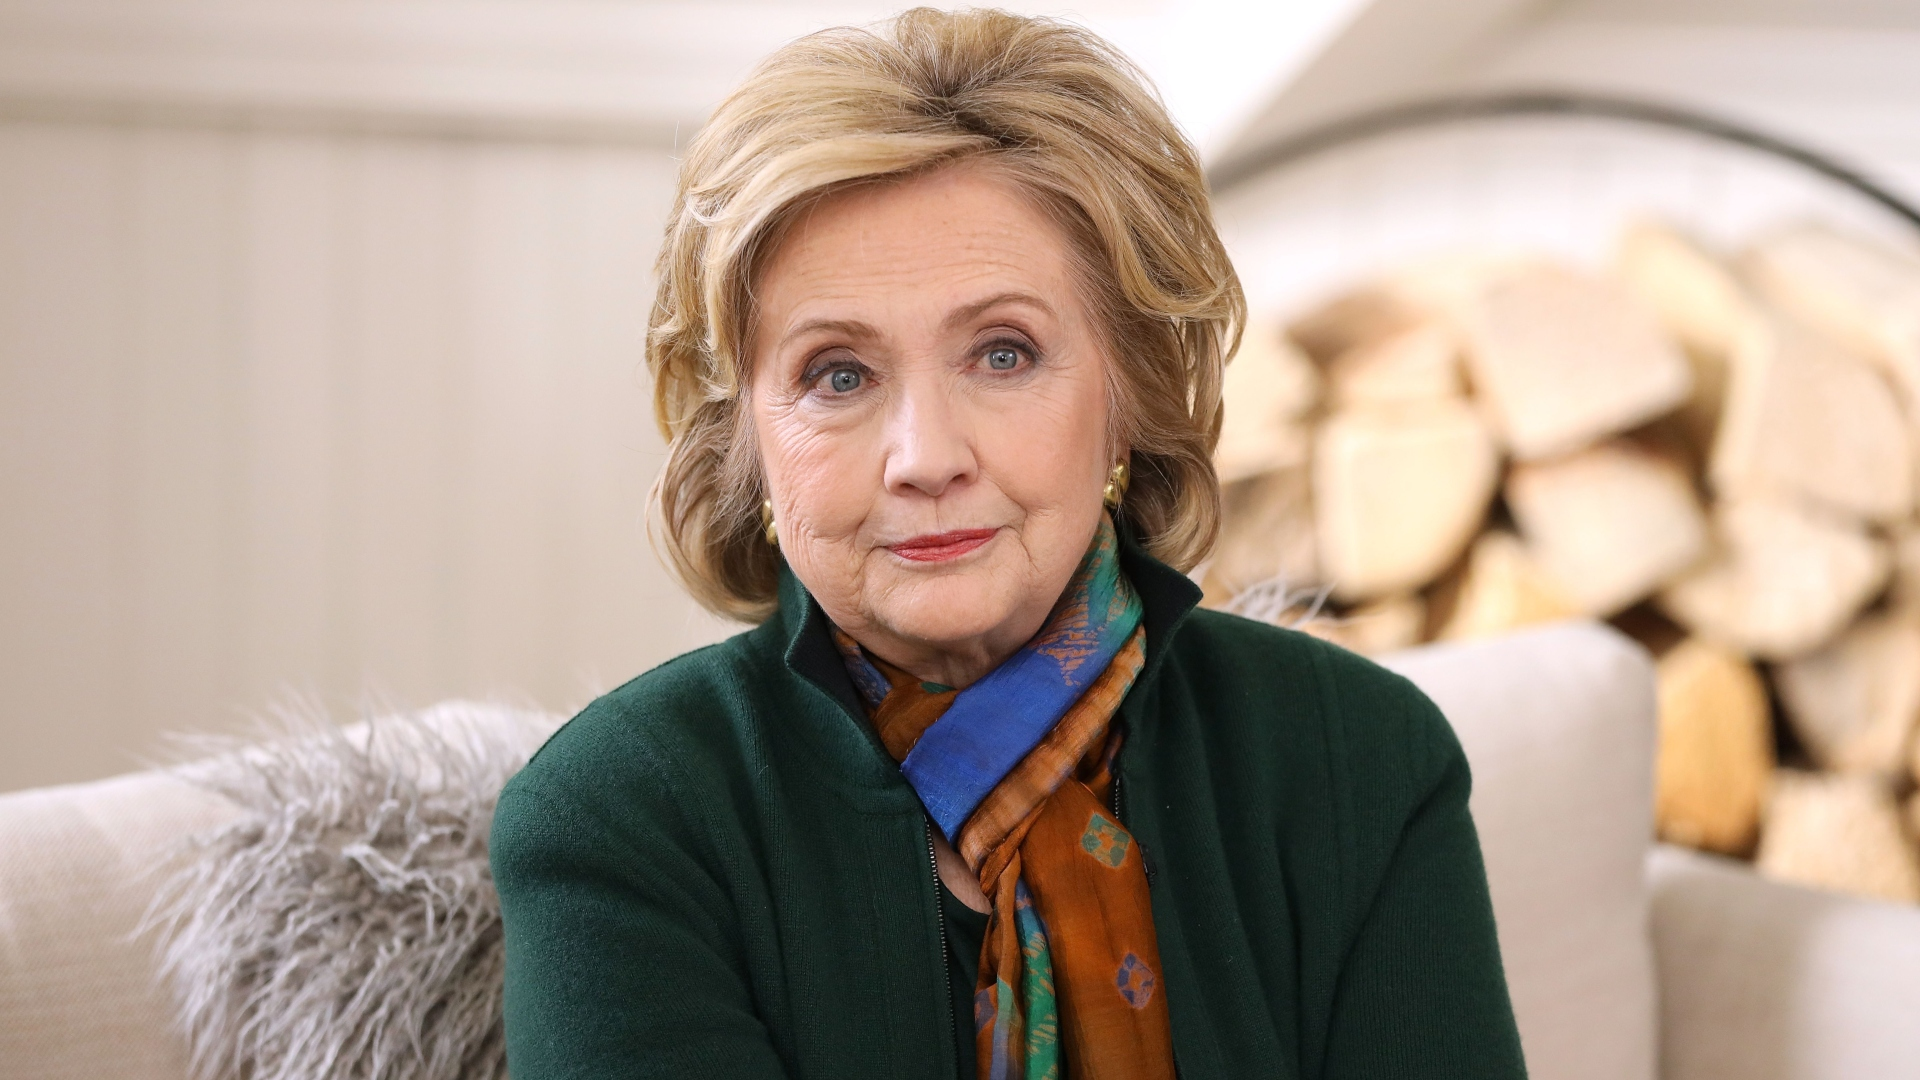 Hillary Clinton Relives Monica Lewinsky Scandal for New Documentary